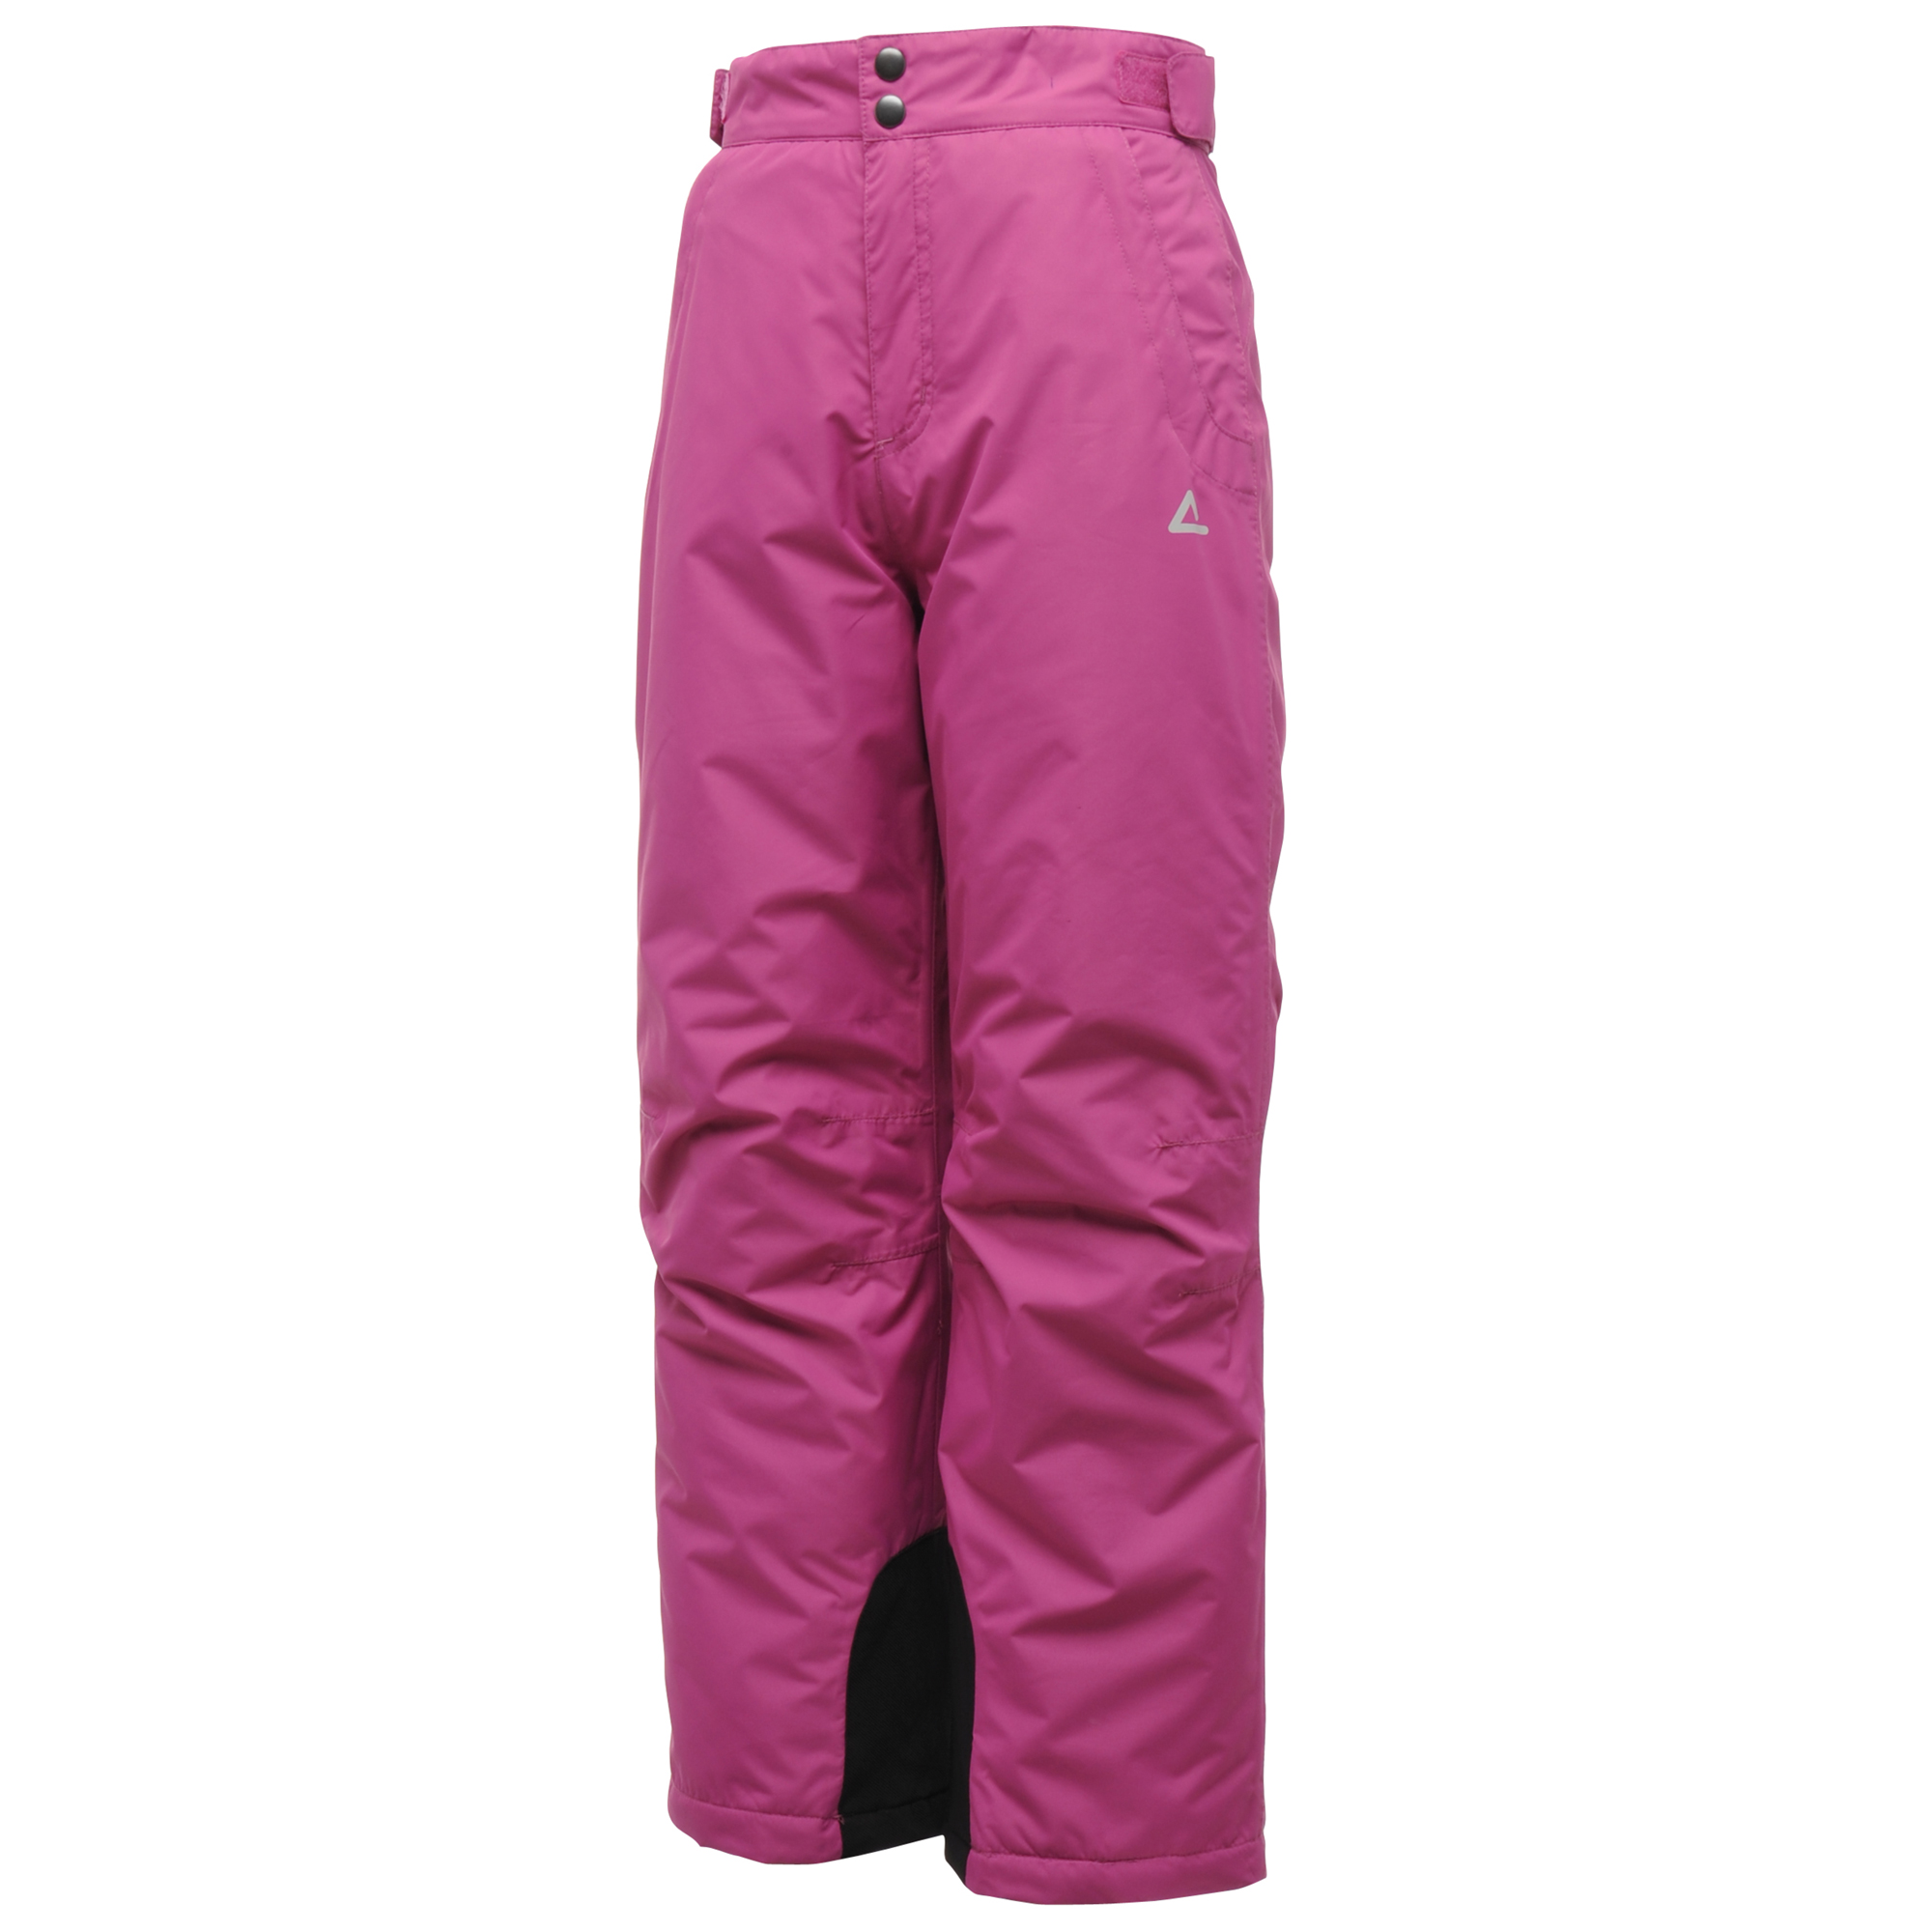 Dare2b Turn About Kid's Ski Pants - Plum Pie